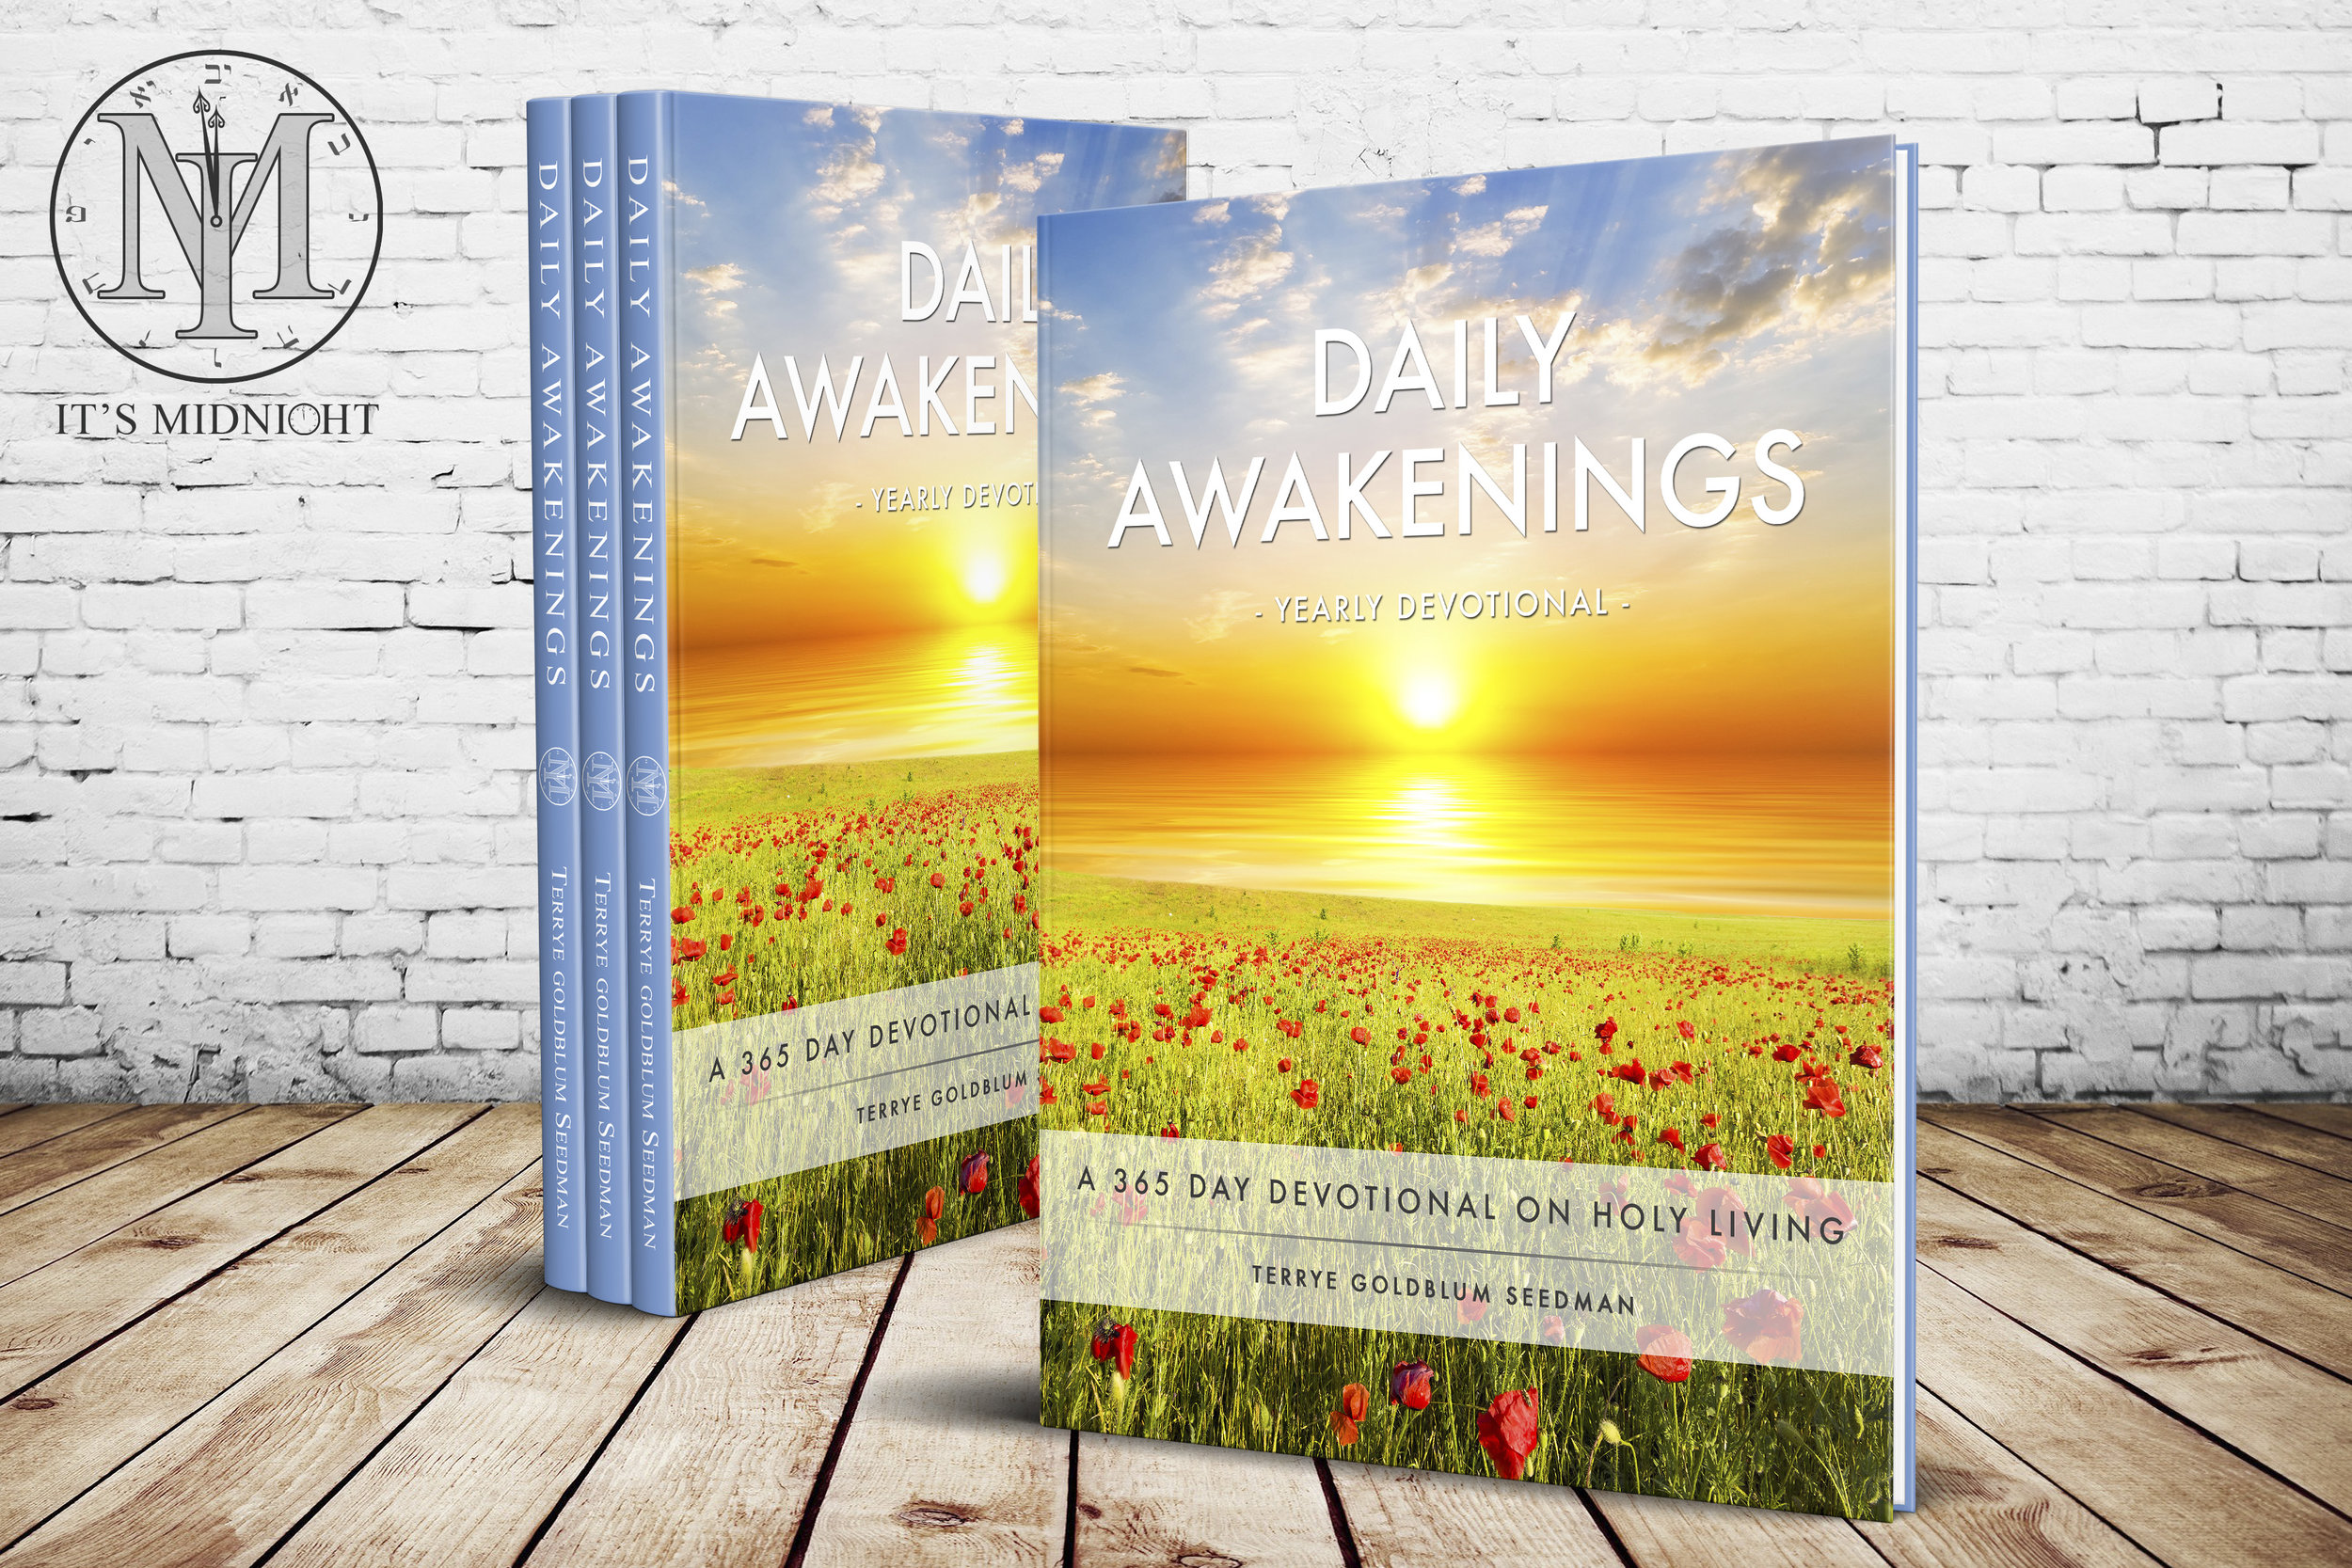 Daily Awakenings | 365 Day Devotional